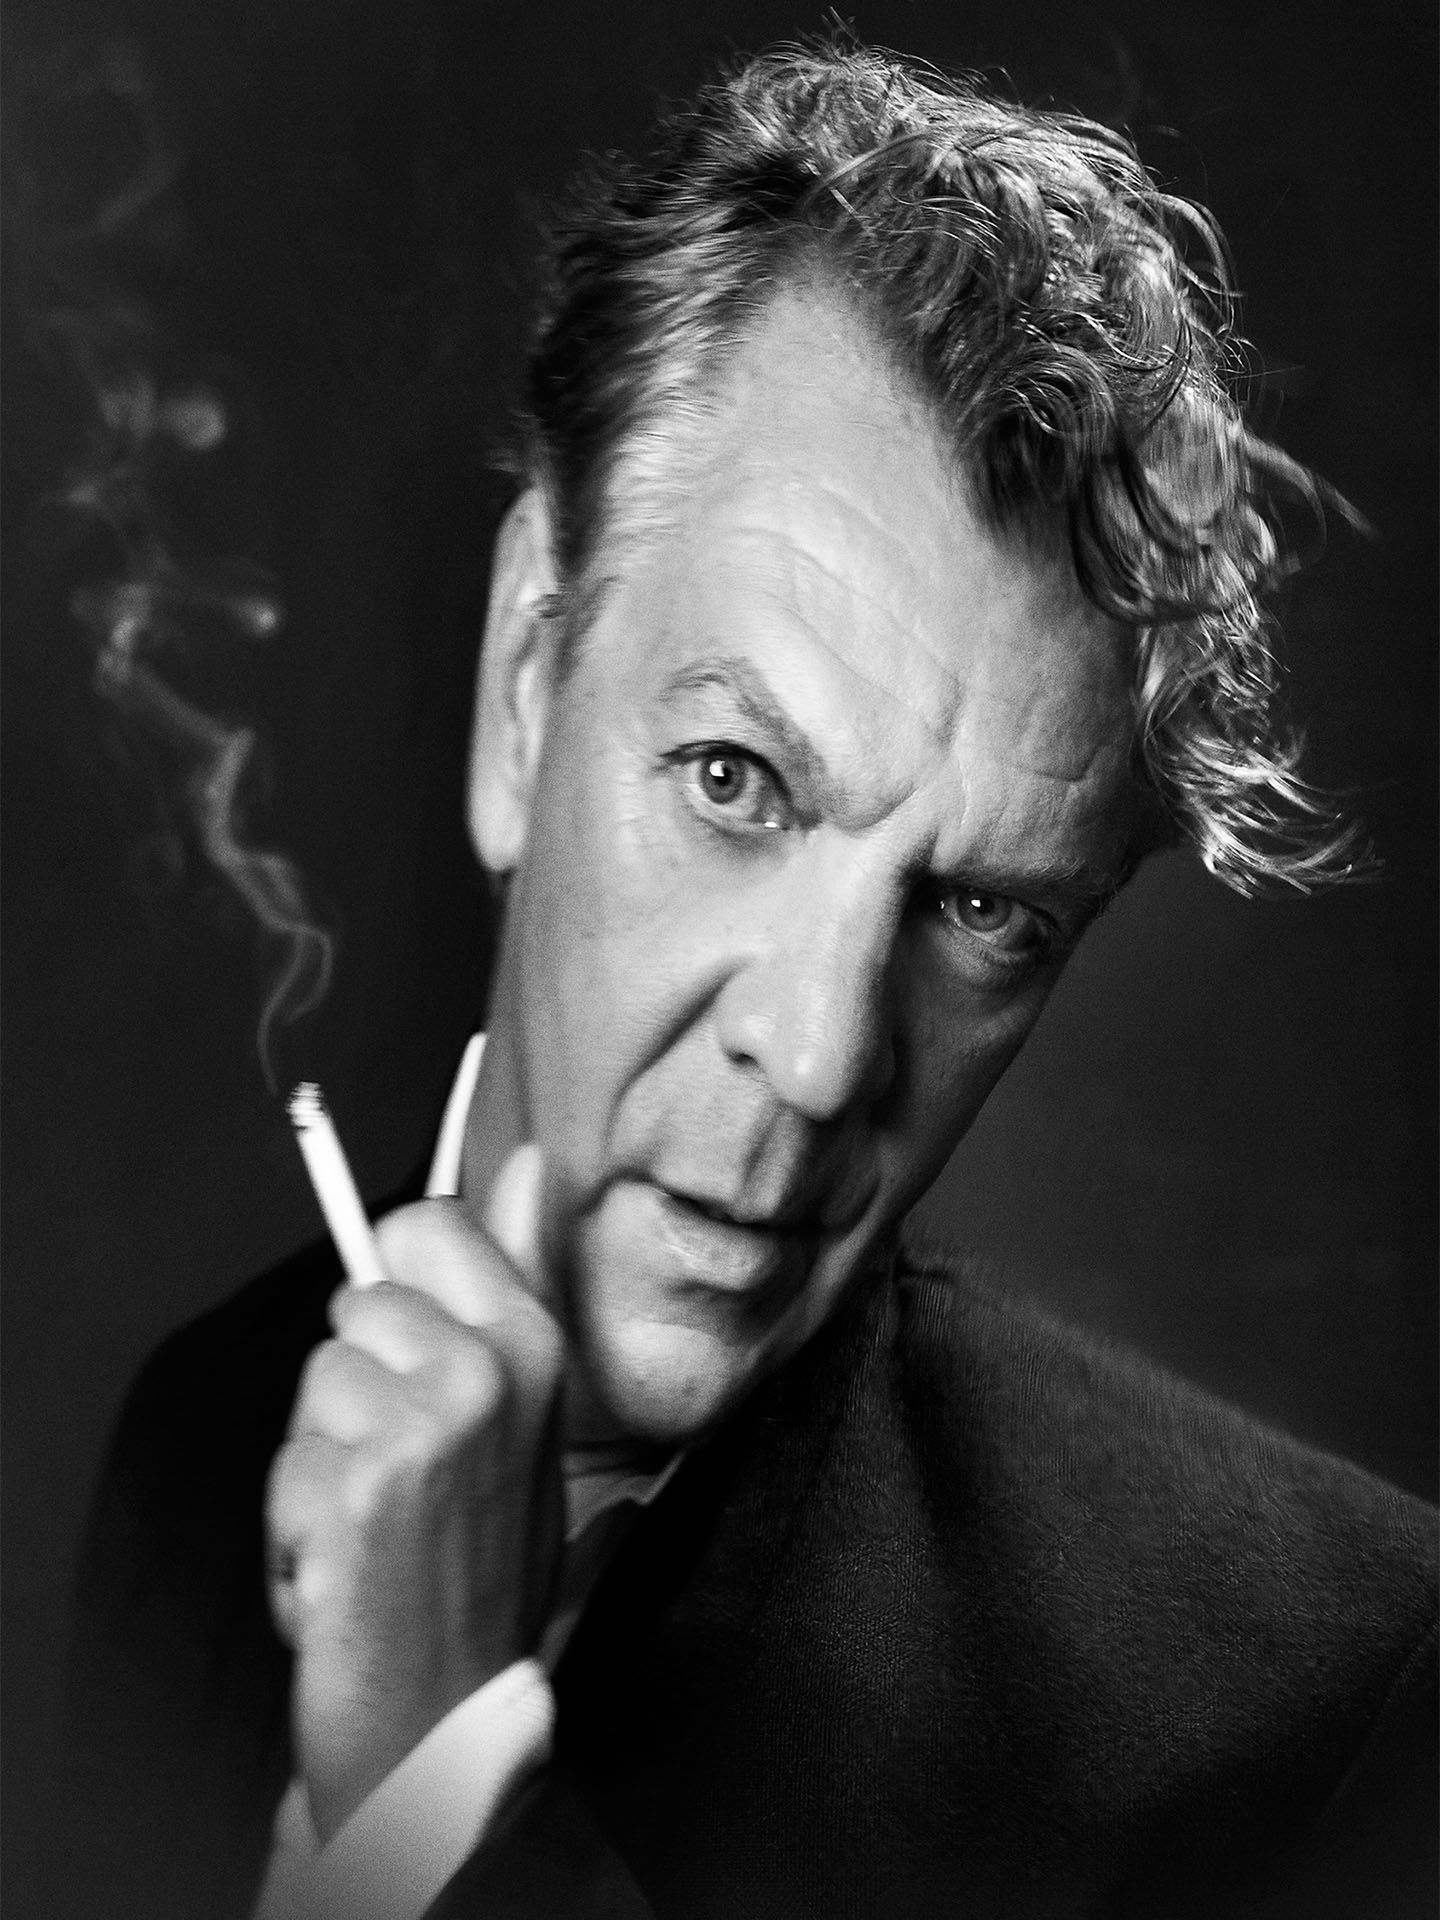 black and white distorted portrait of Marc Labreche holding a cigarette by Jocelyn Michel for Voir